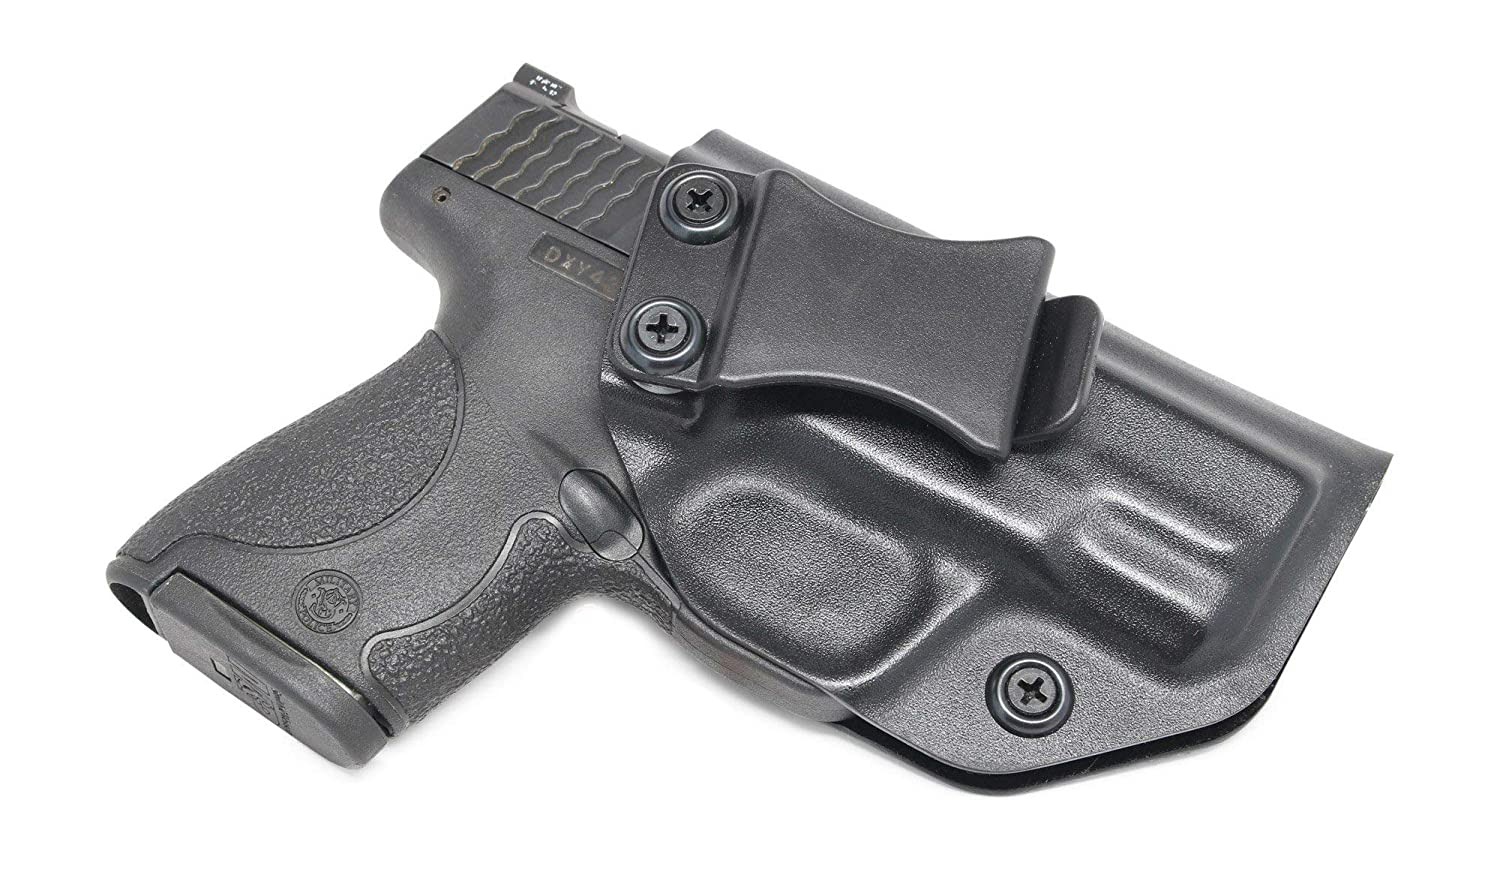 Best Deep Concealment Holster 2019 - Reviews and Top Picks